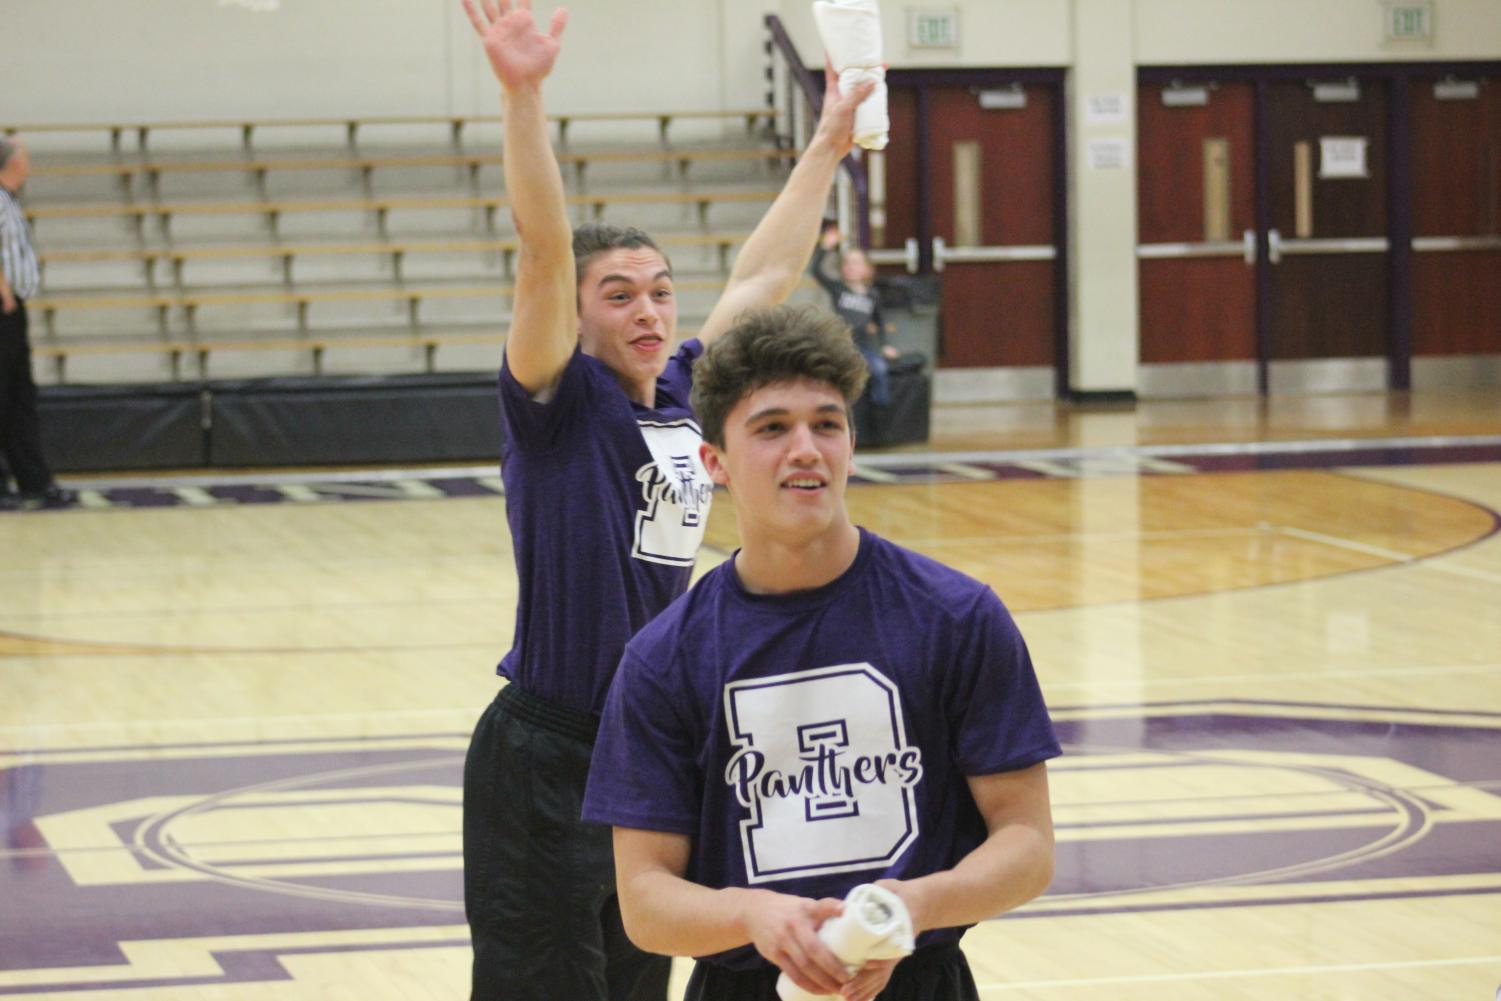 Sophomore Jedd Conrad (Front) and Senior Sam Conrad joined the cheerleading squad after deciding not to play football this year. The two brothers cheer at the varsity boys basketball games.